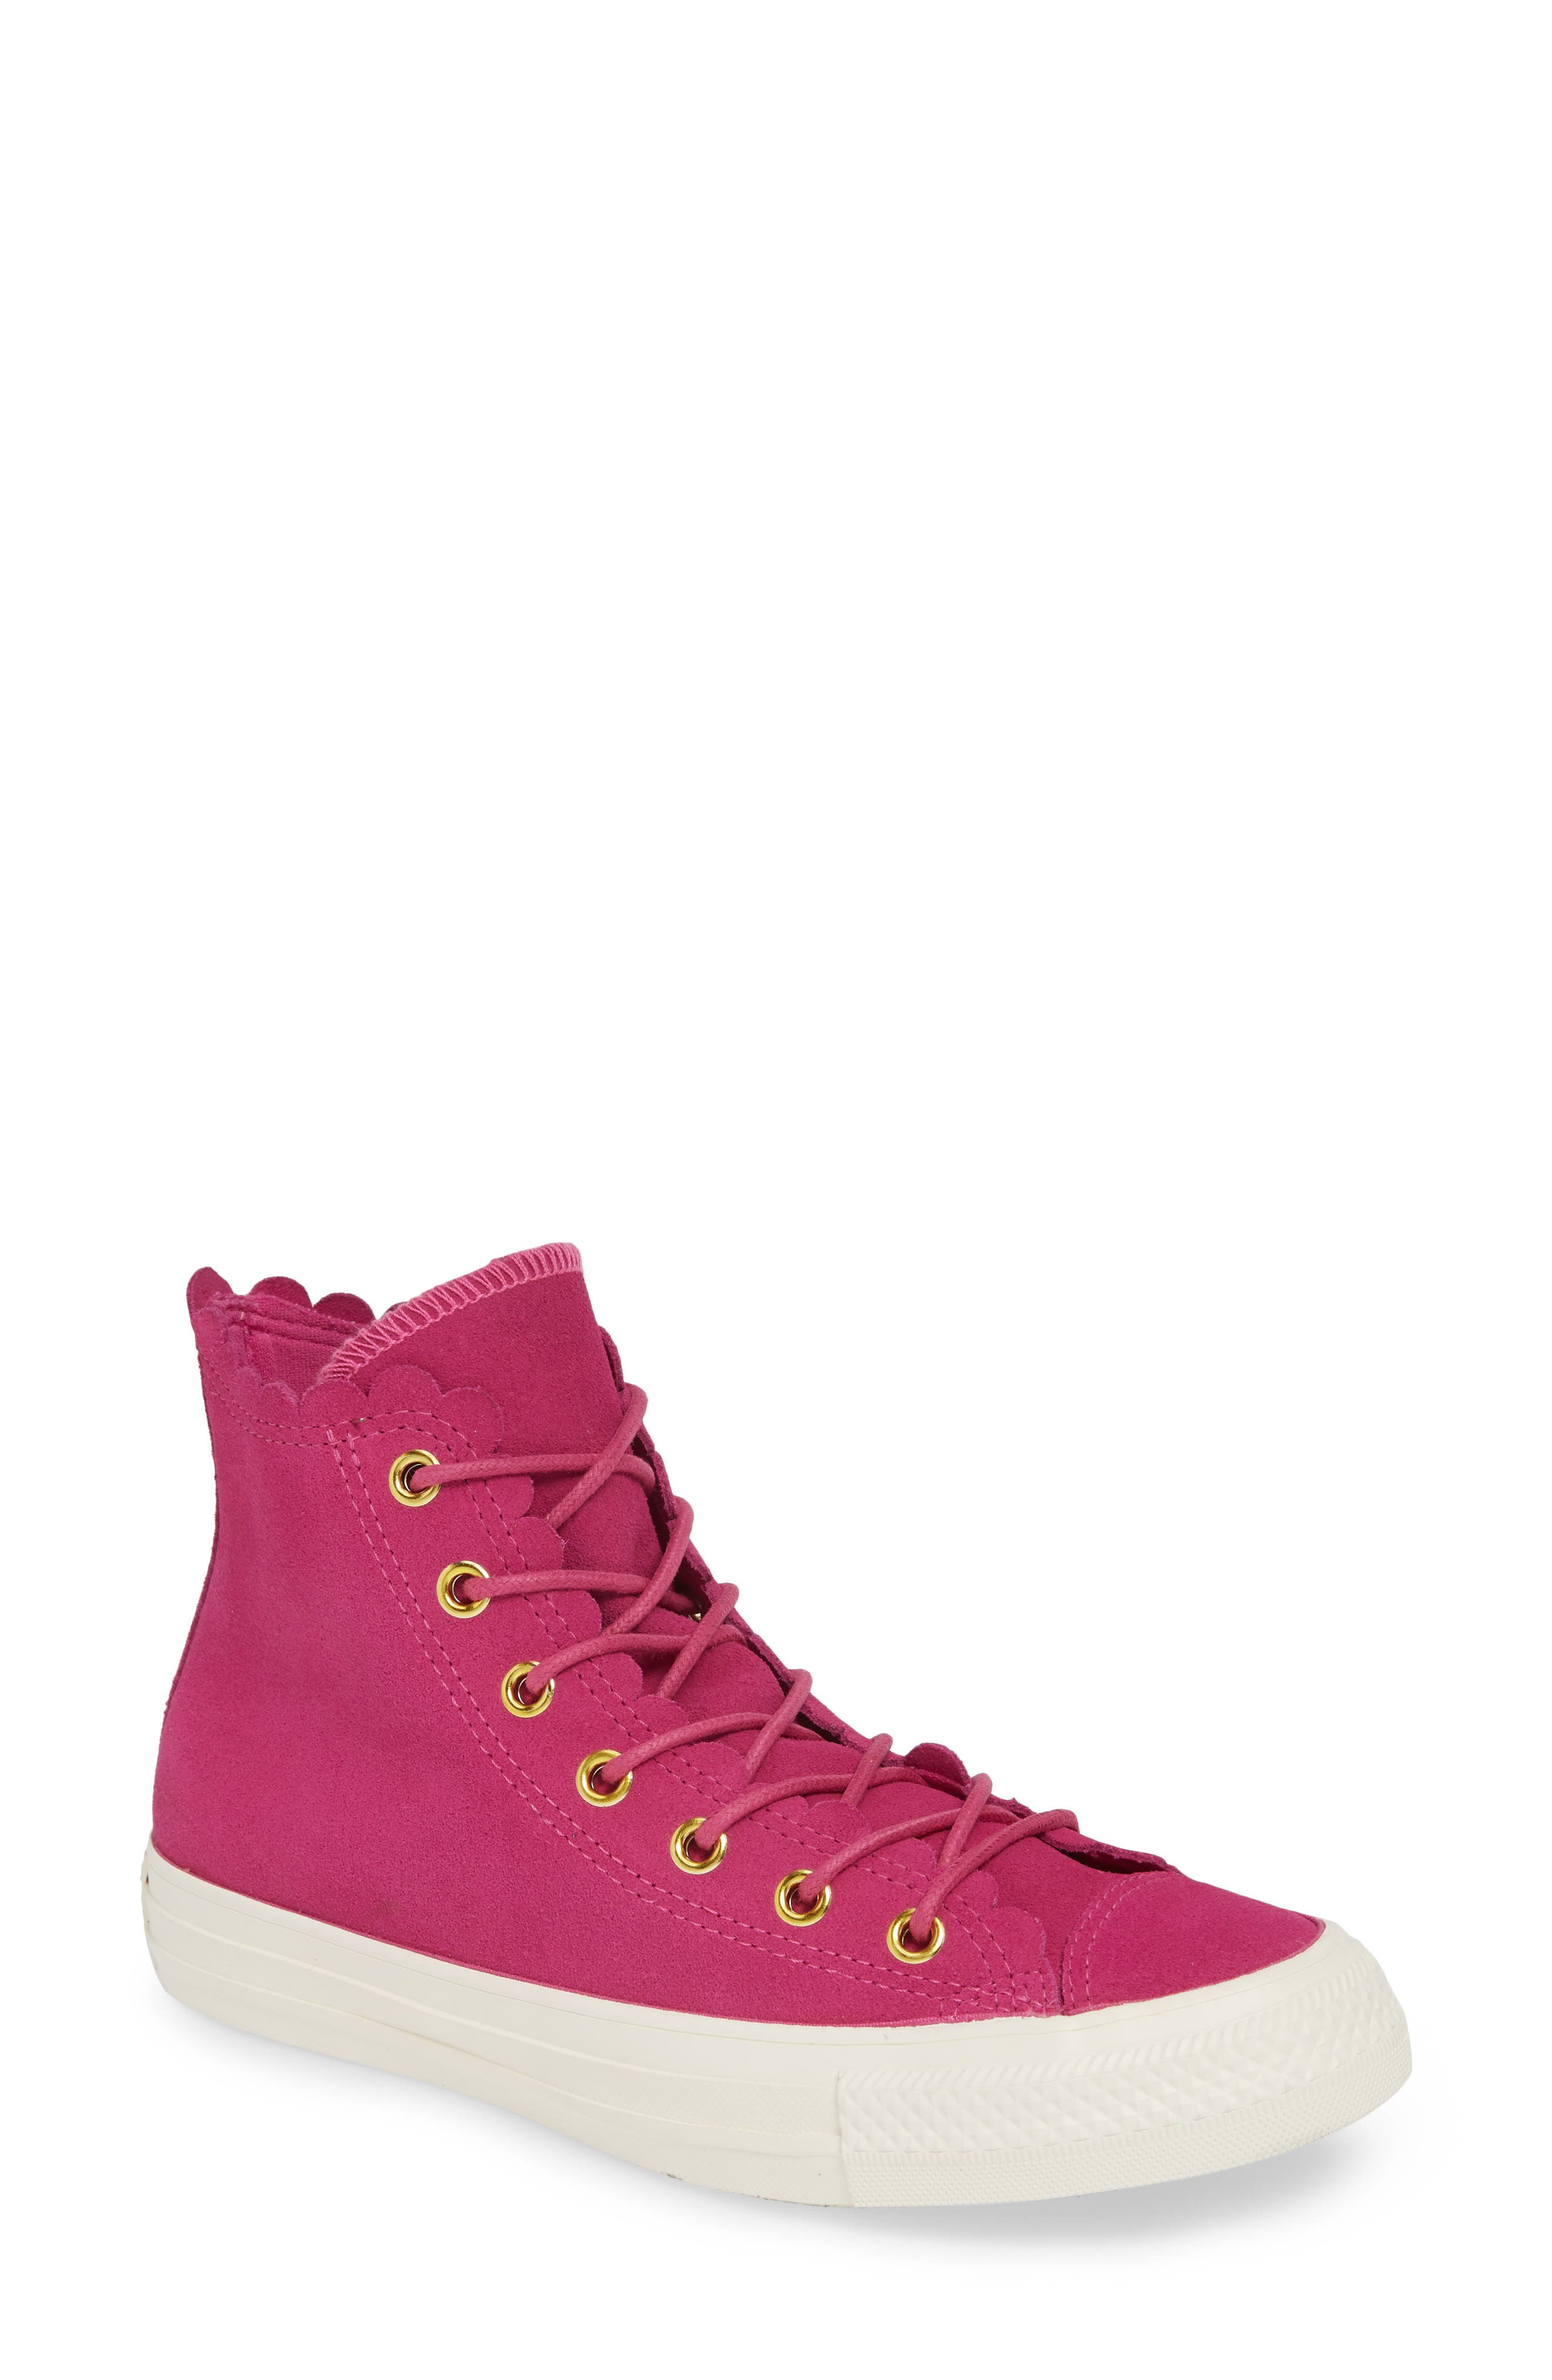 CONVERSE Chuck Taylor<sup>®</sup> All Star<sup>®</sup> Scallop High Top Suede Sneaker, Main, color, ACTIVE FUCHSIA/ GOLD/ EGRET